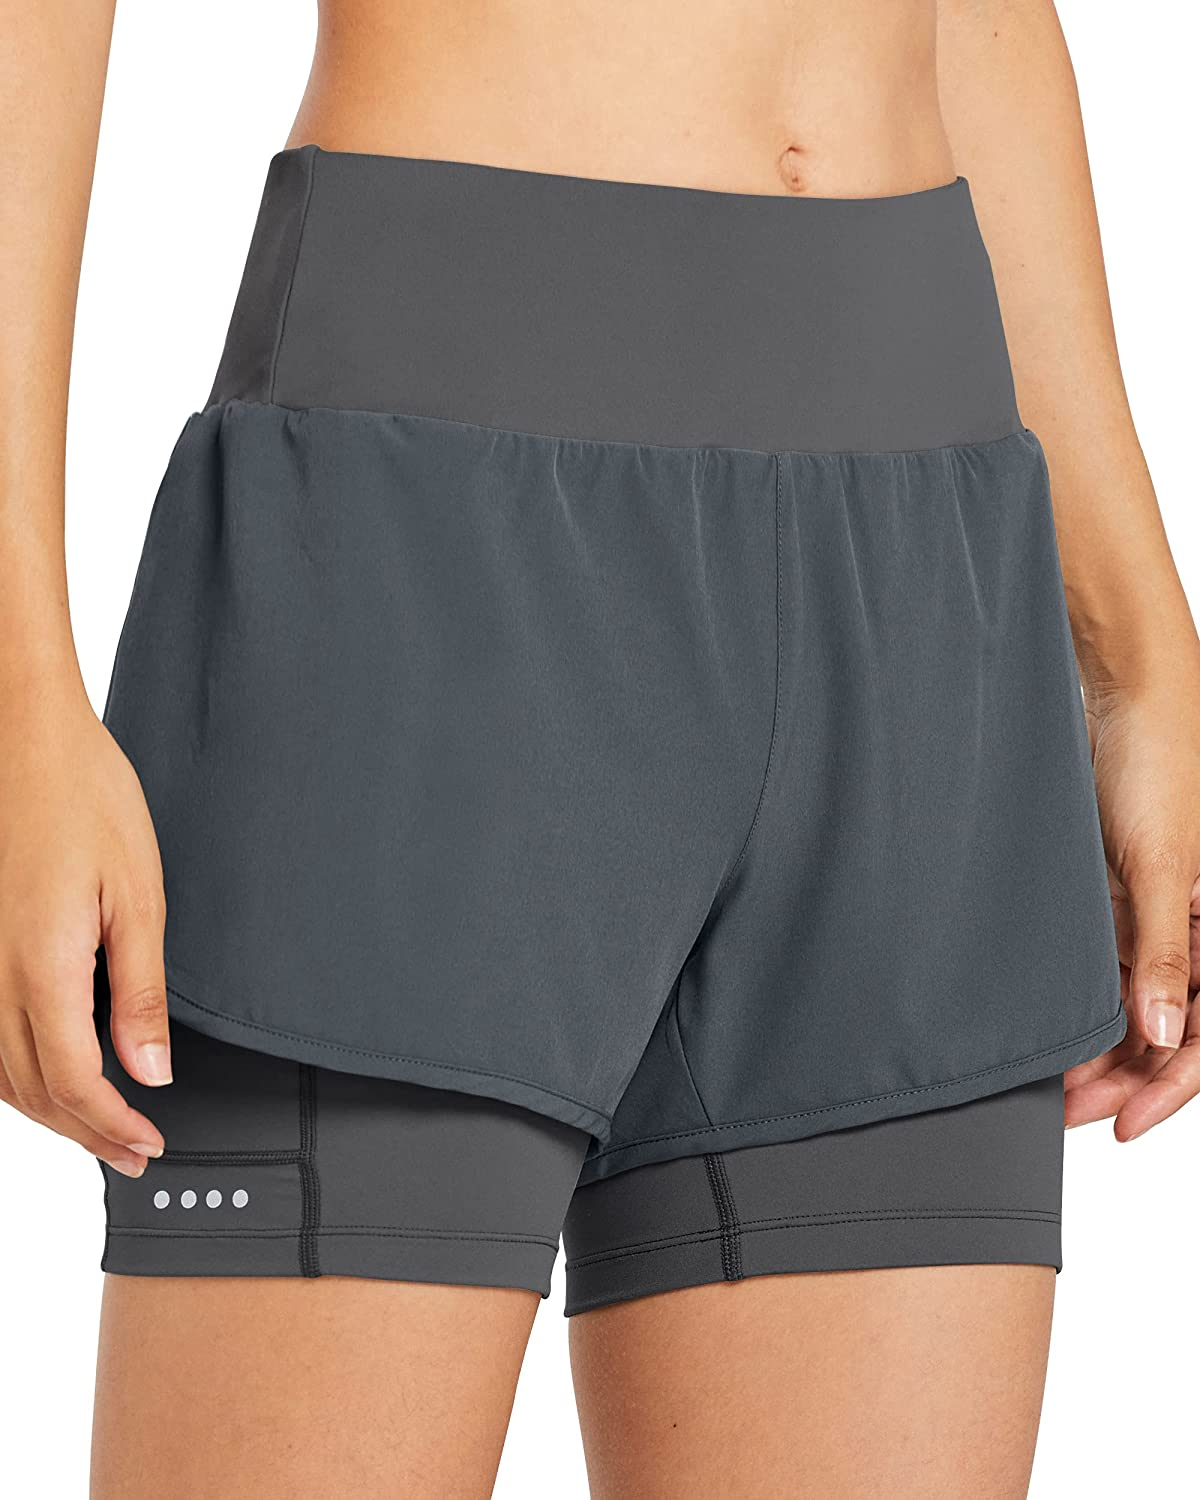 Libin Women's 2 Direct store in 1 Running with Lightwei Max 45% OFF Shorts Athletic Liner